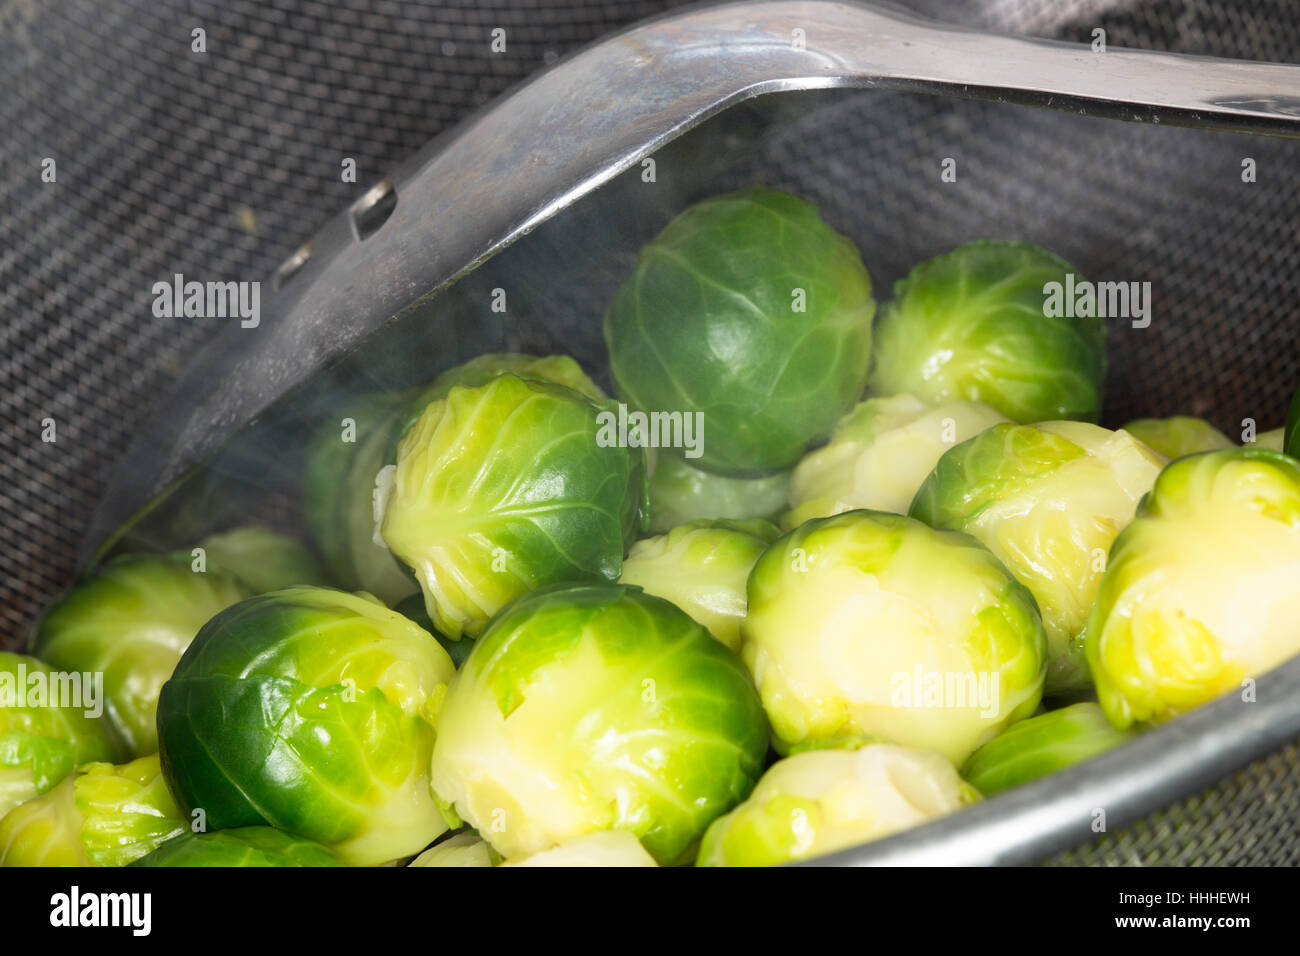 Boiled fresh cooked Brussel Sprouts. - Stock Image